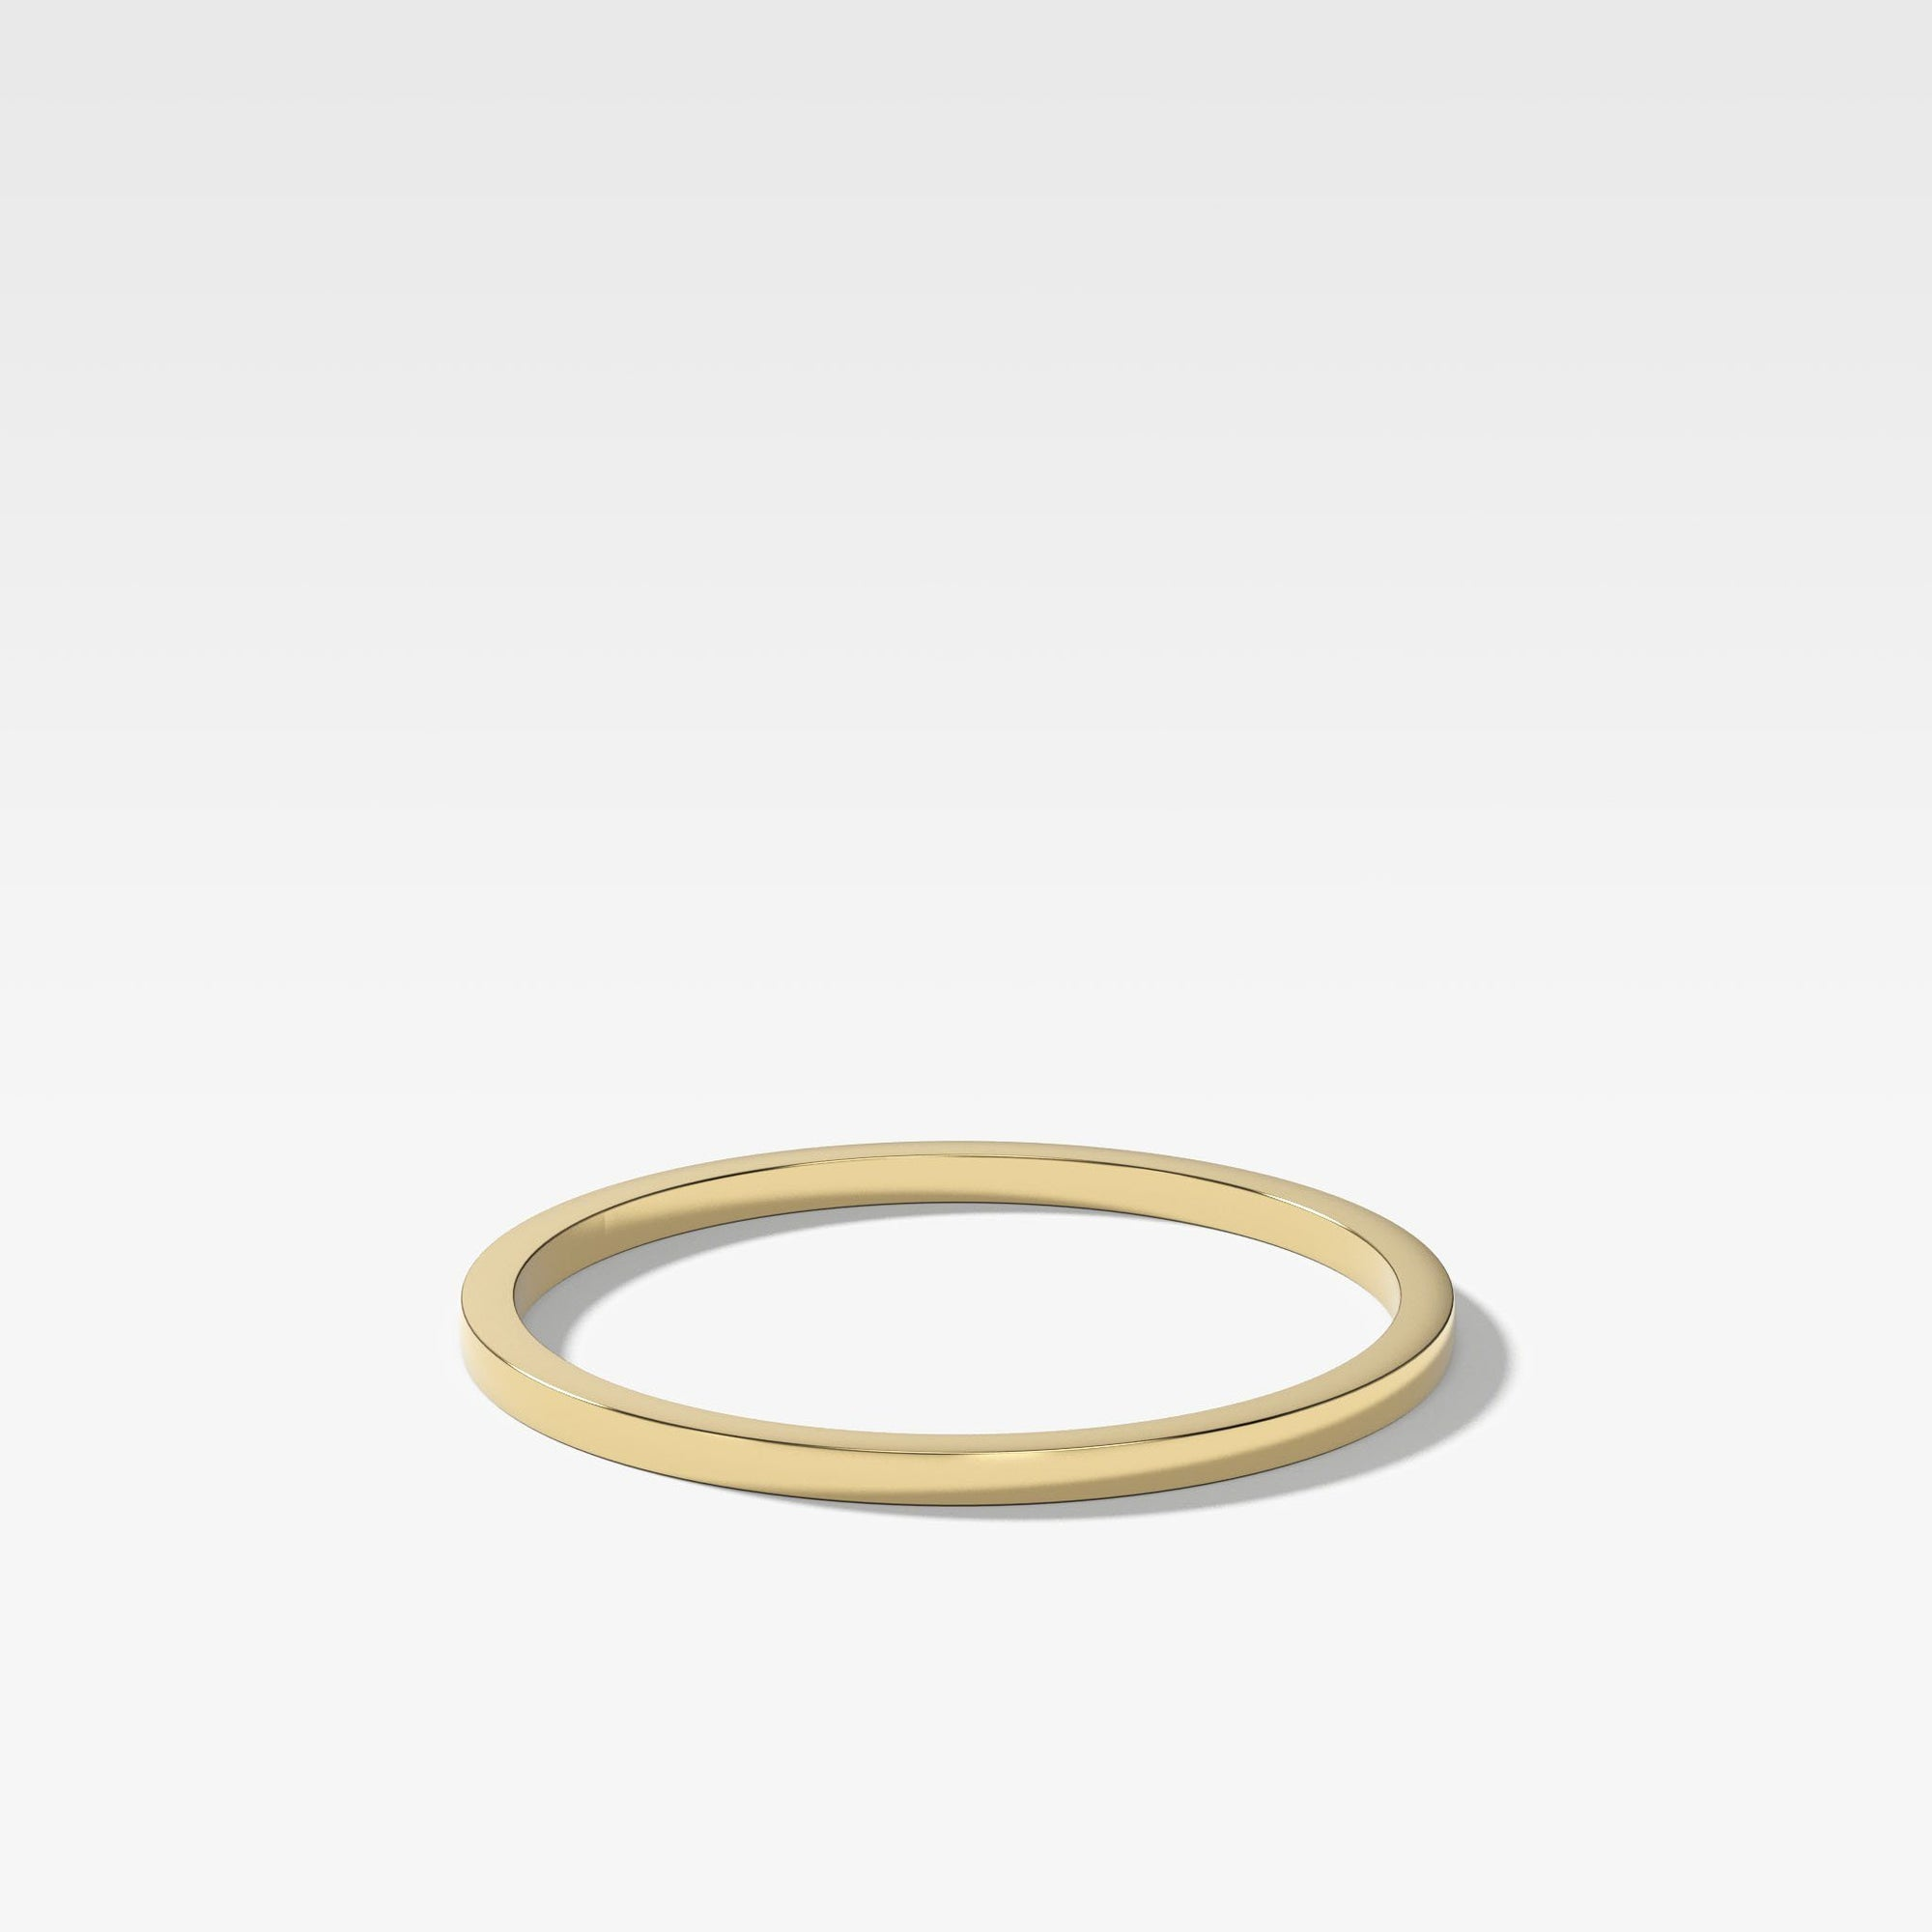 Finest Band (1Mm) In Yellow Gold By Good Stone